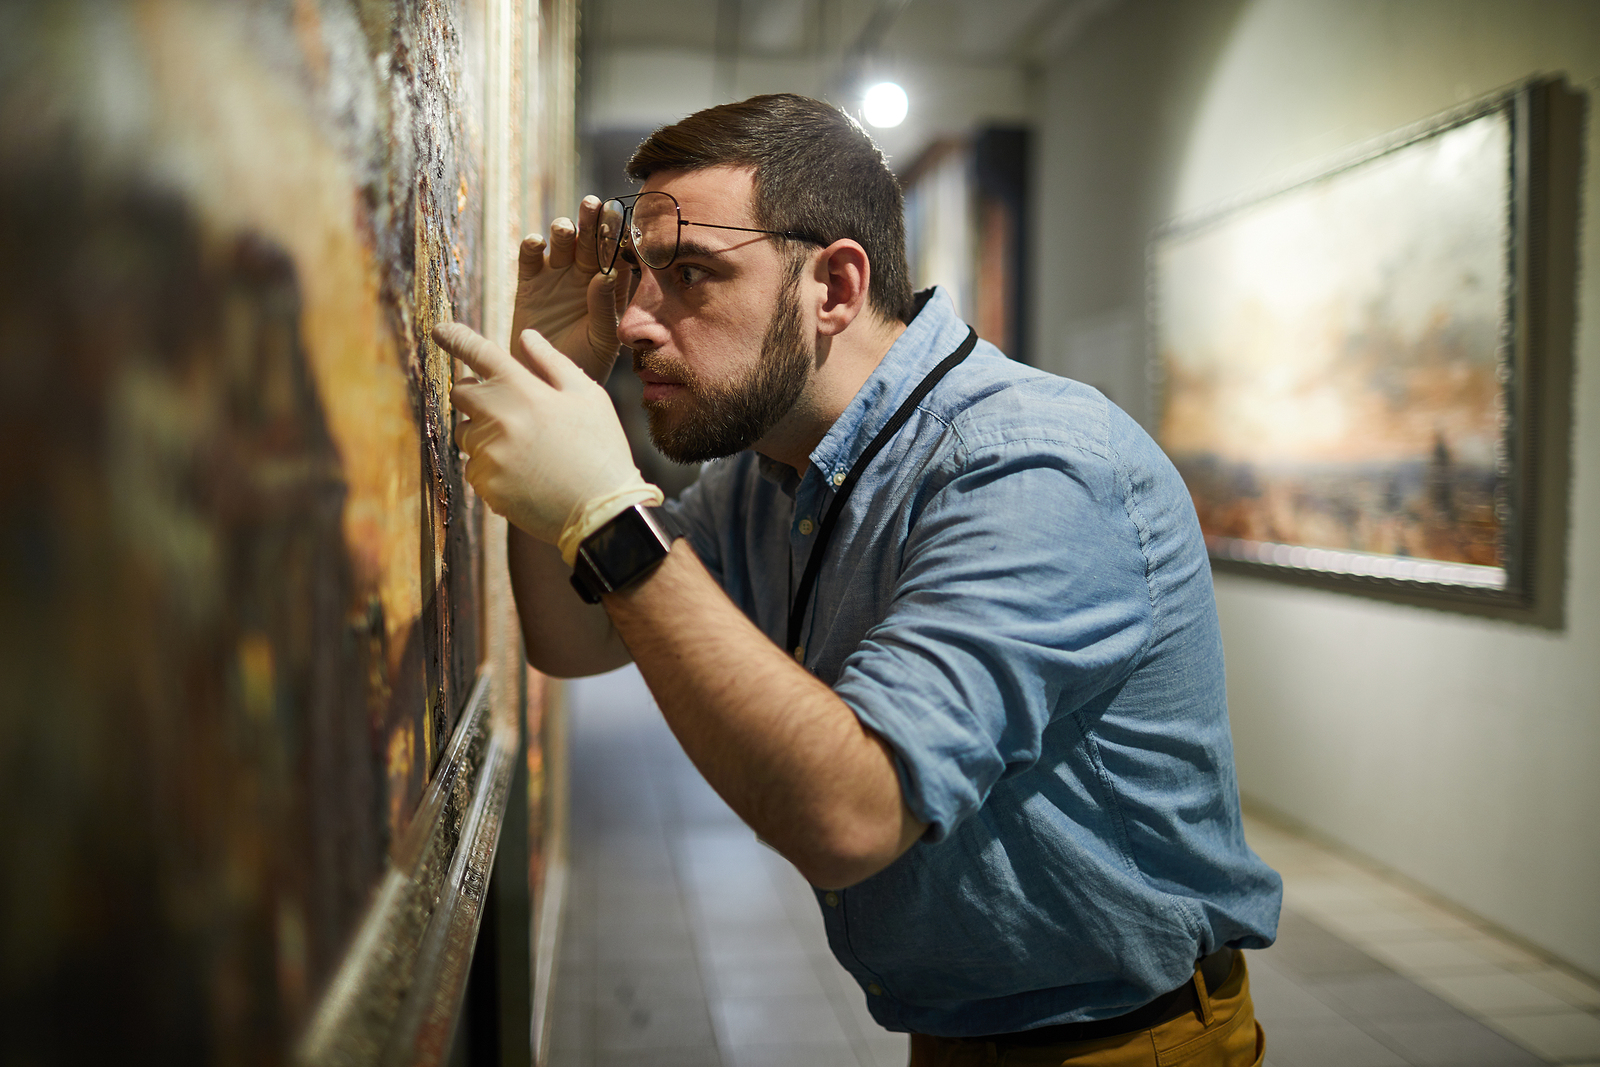 What Is Art Appraisal, and Why Should You Use It?